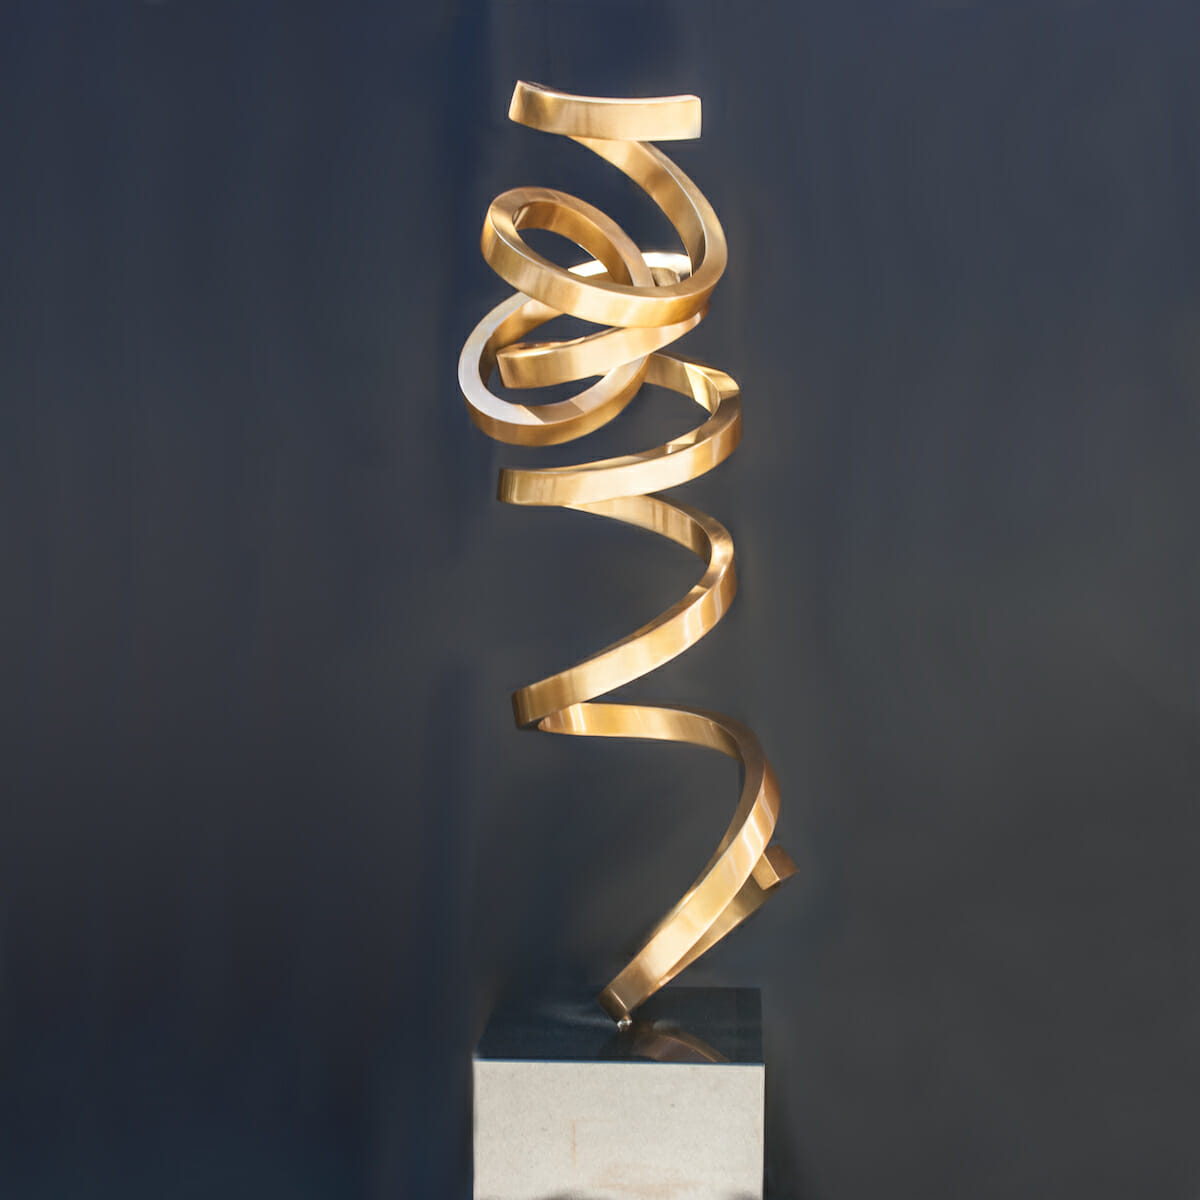 Golden-Tendril-01.jpg